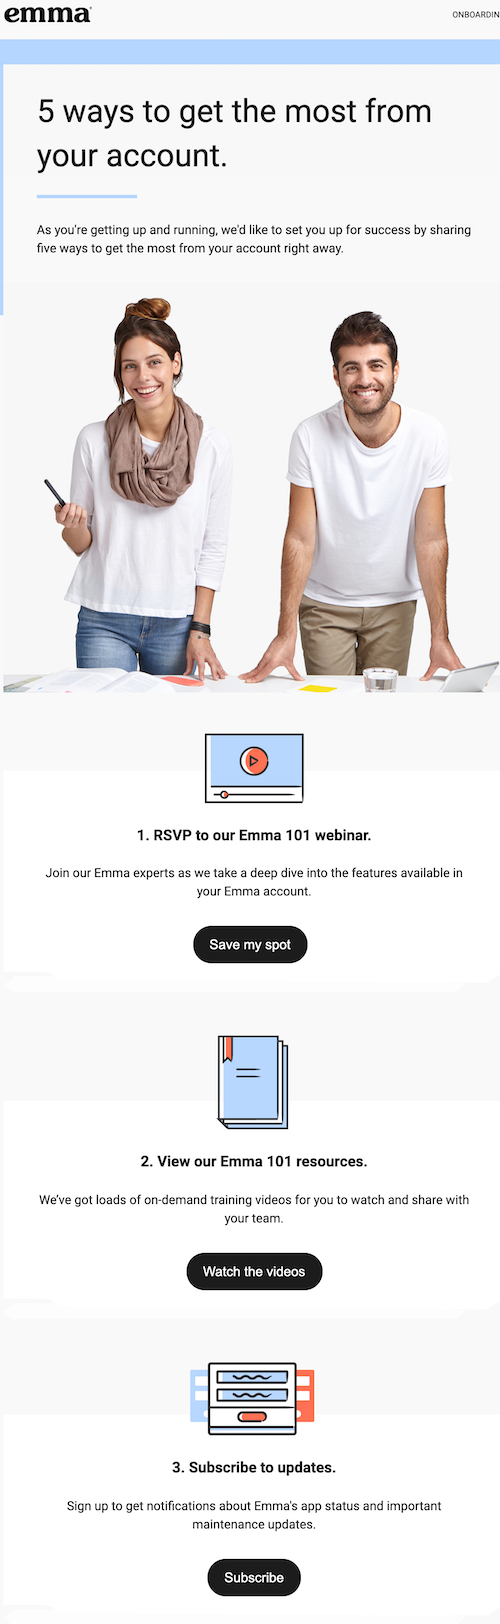 content-based-email-example: Here's an example of Emma's content-based automated email.